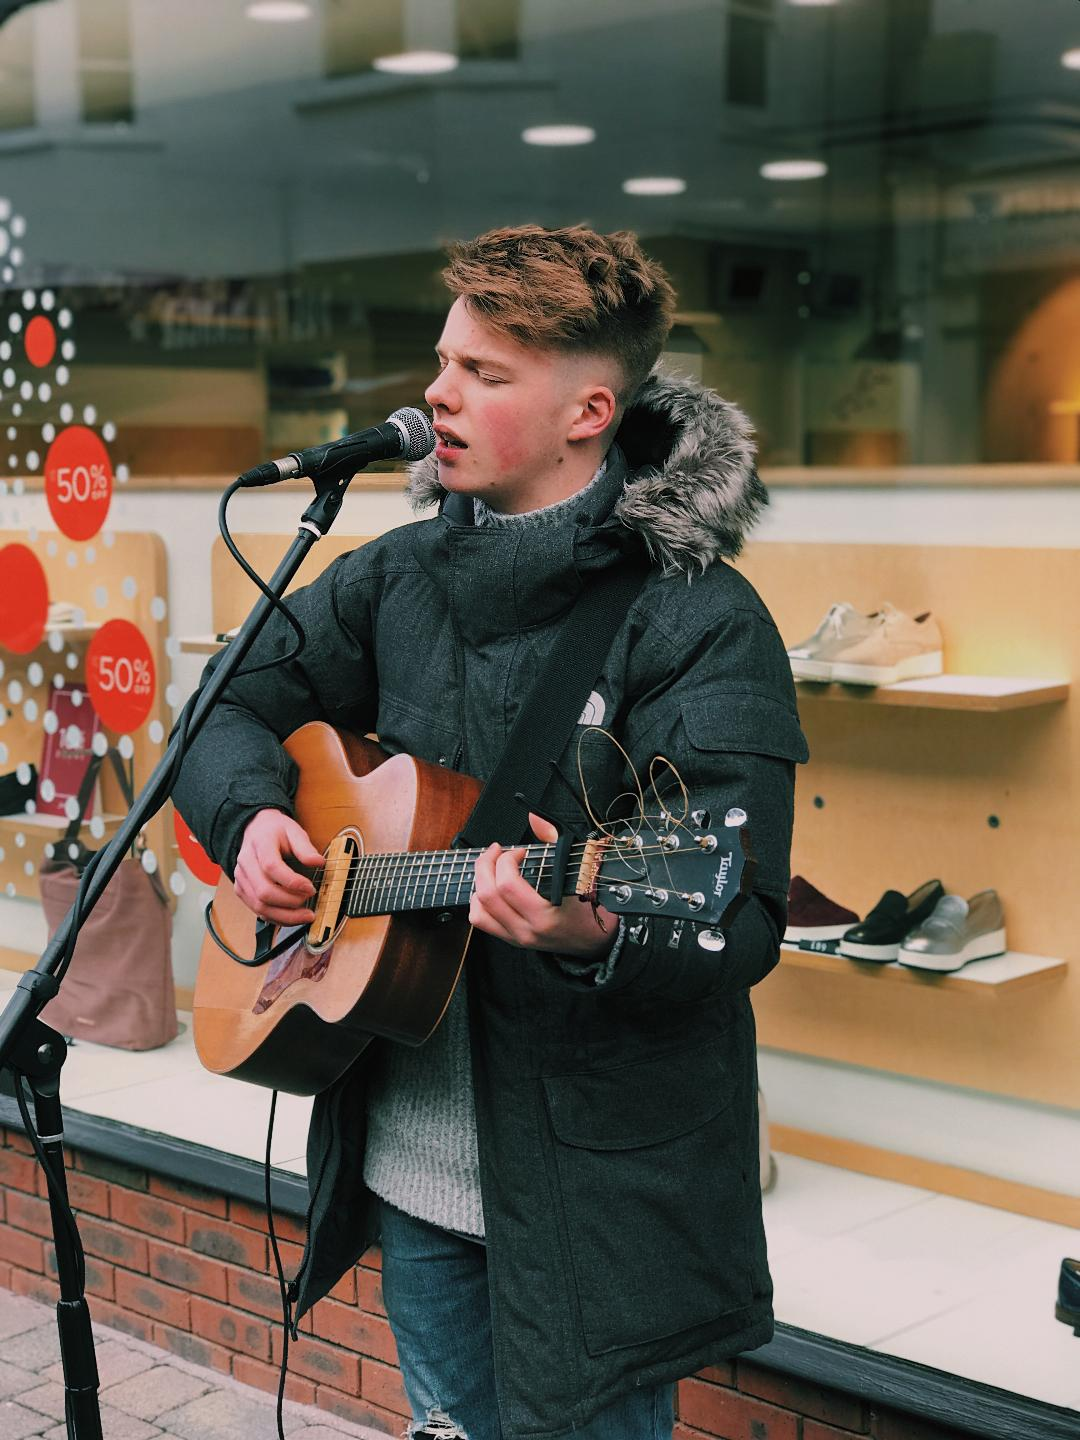 Tim Newman is a talented teenager with a definite passion for music